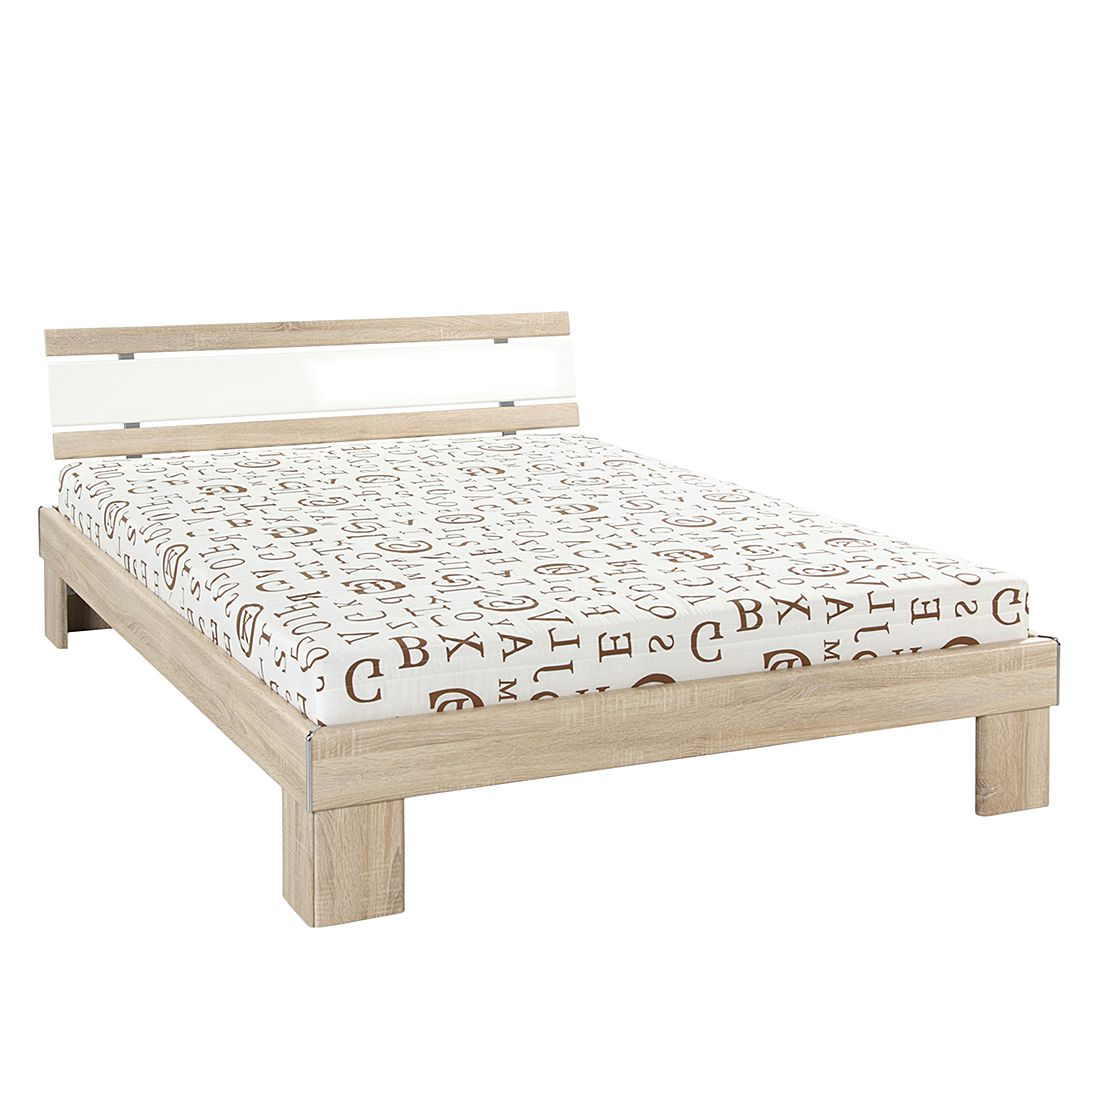 Lit Betty - Matelas de mousse froide - Imitation chêne brut de sciage / Blanc, Home Design